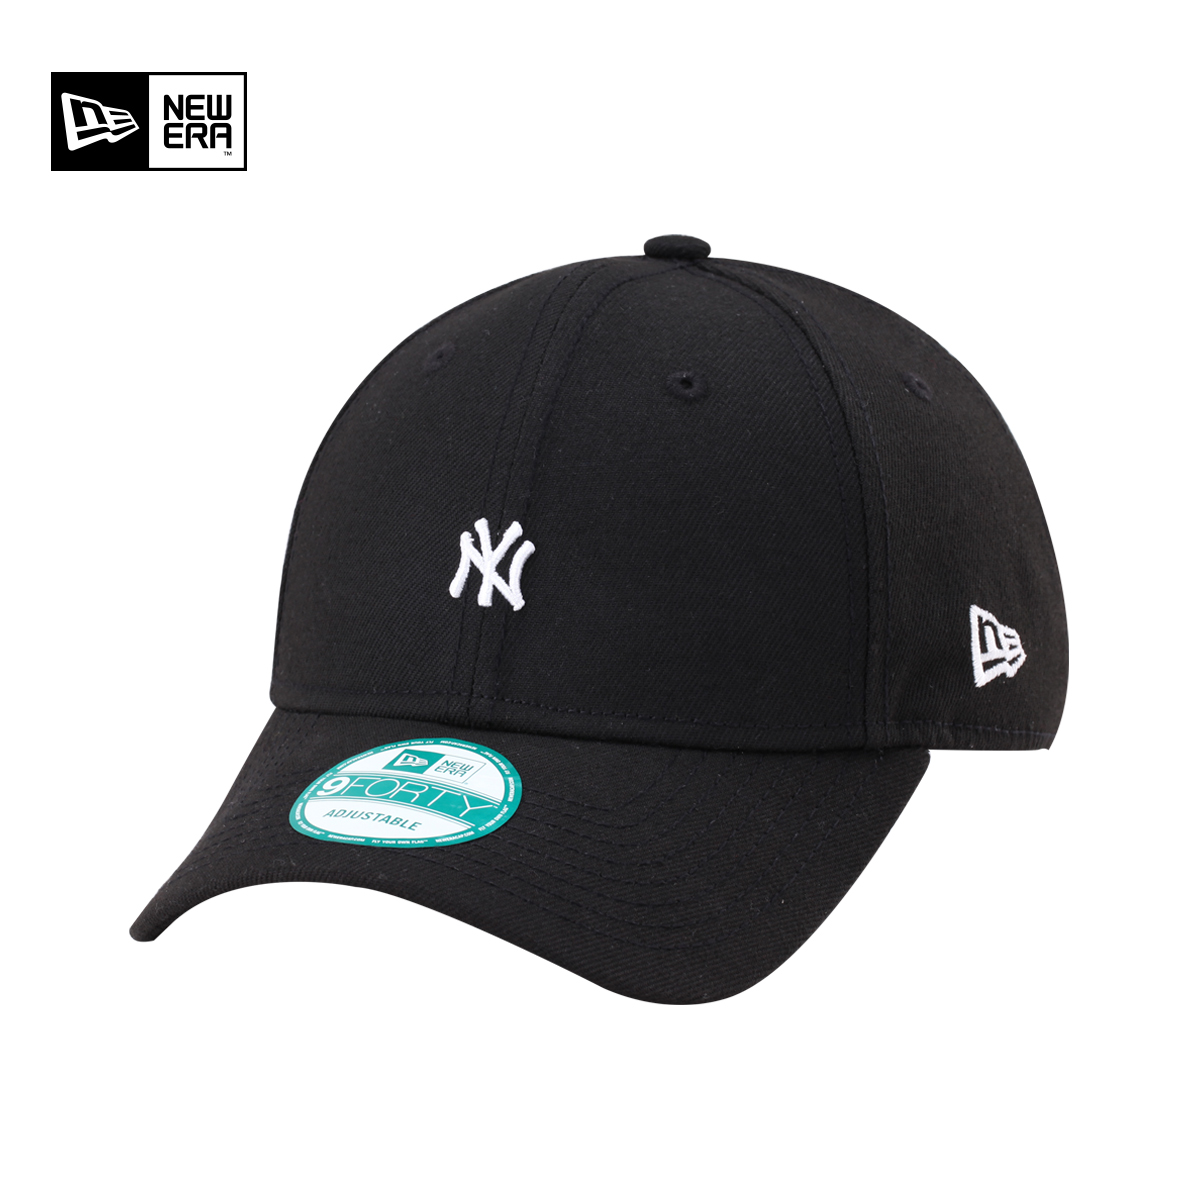 52cdc92a2 ... clearance new era official authentic mlb new york yankees baseball cap  sports 70324715 ae563 c9e69